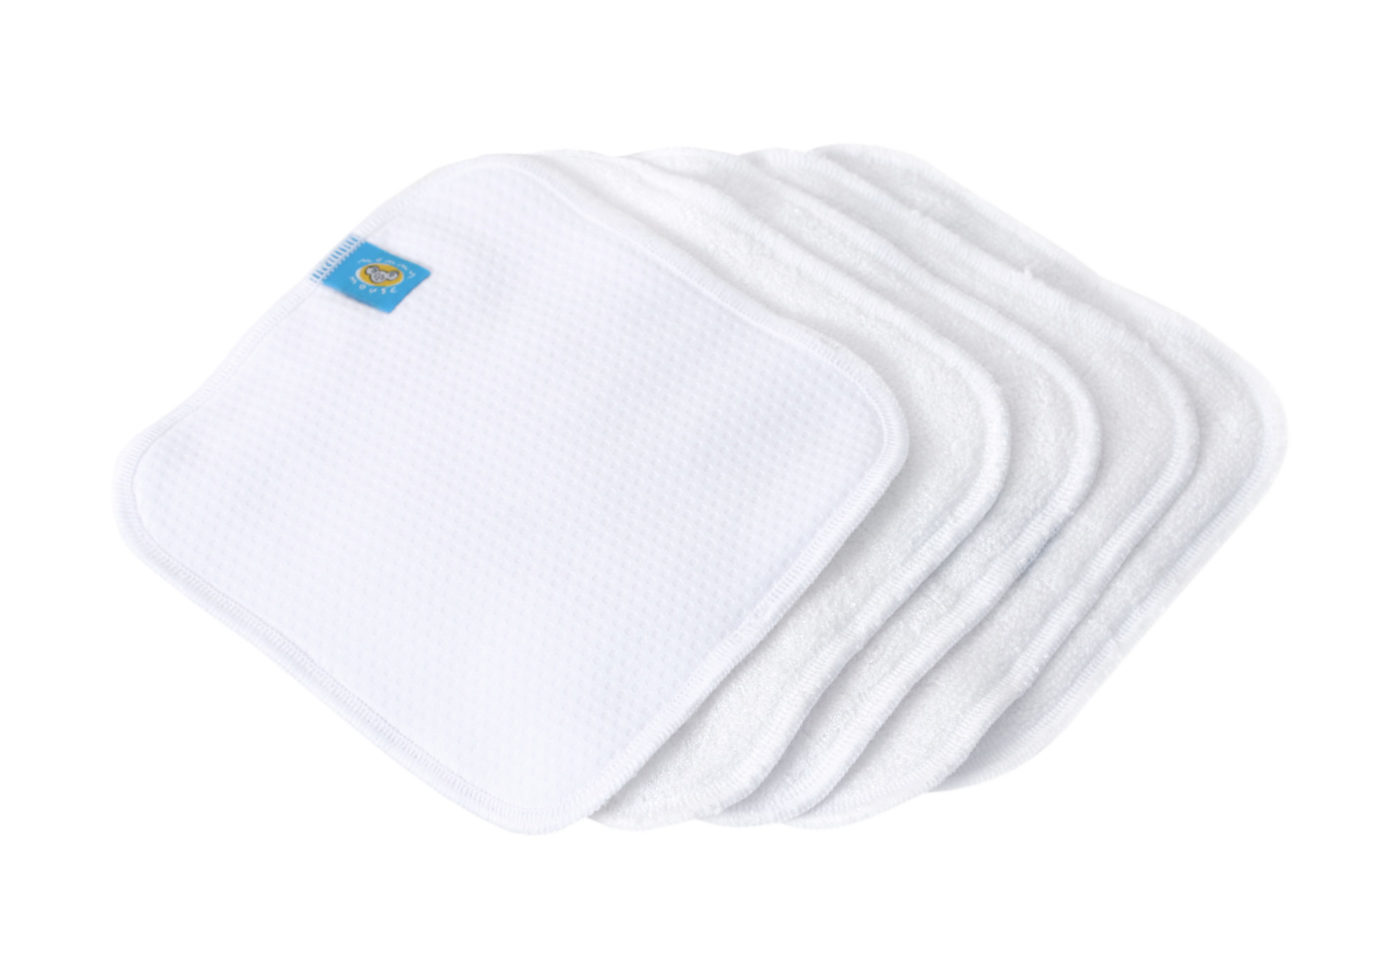 Reusable Wipe Pouch TIMME+ 5pcs Reusable Wipes (COMBINED SET)